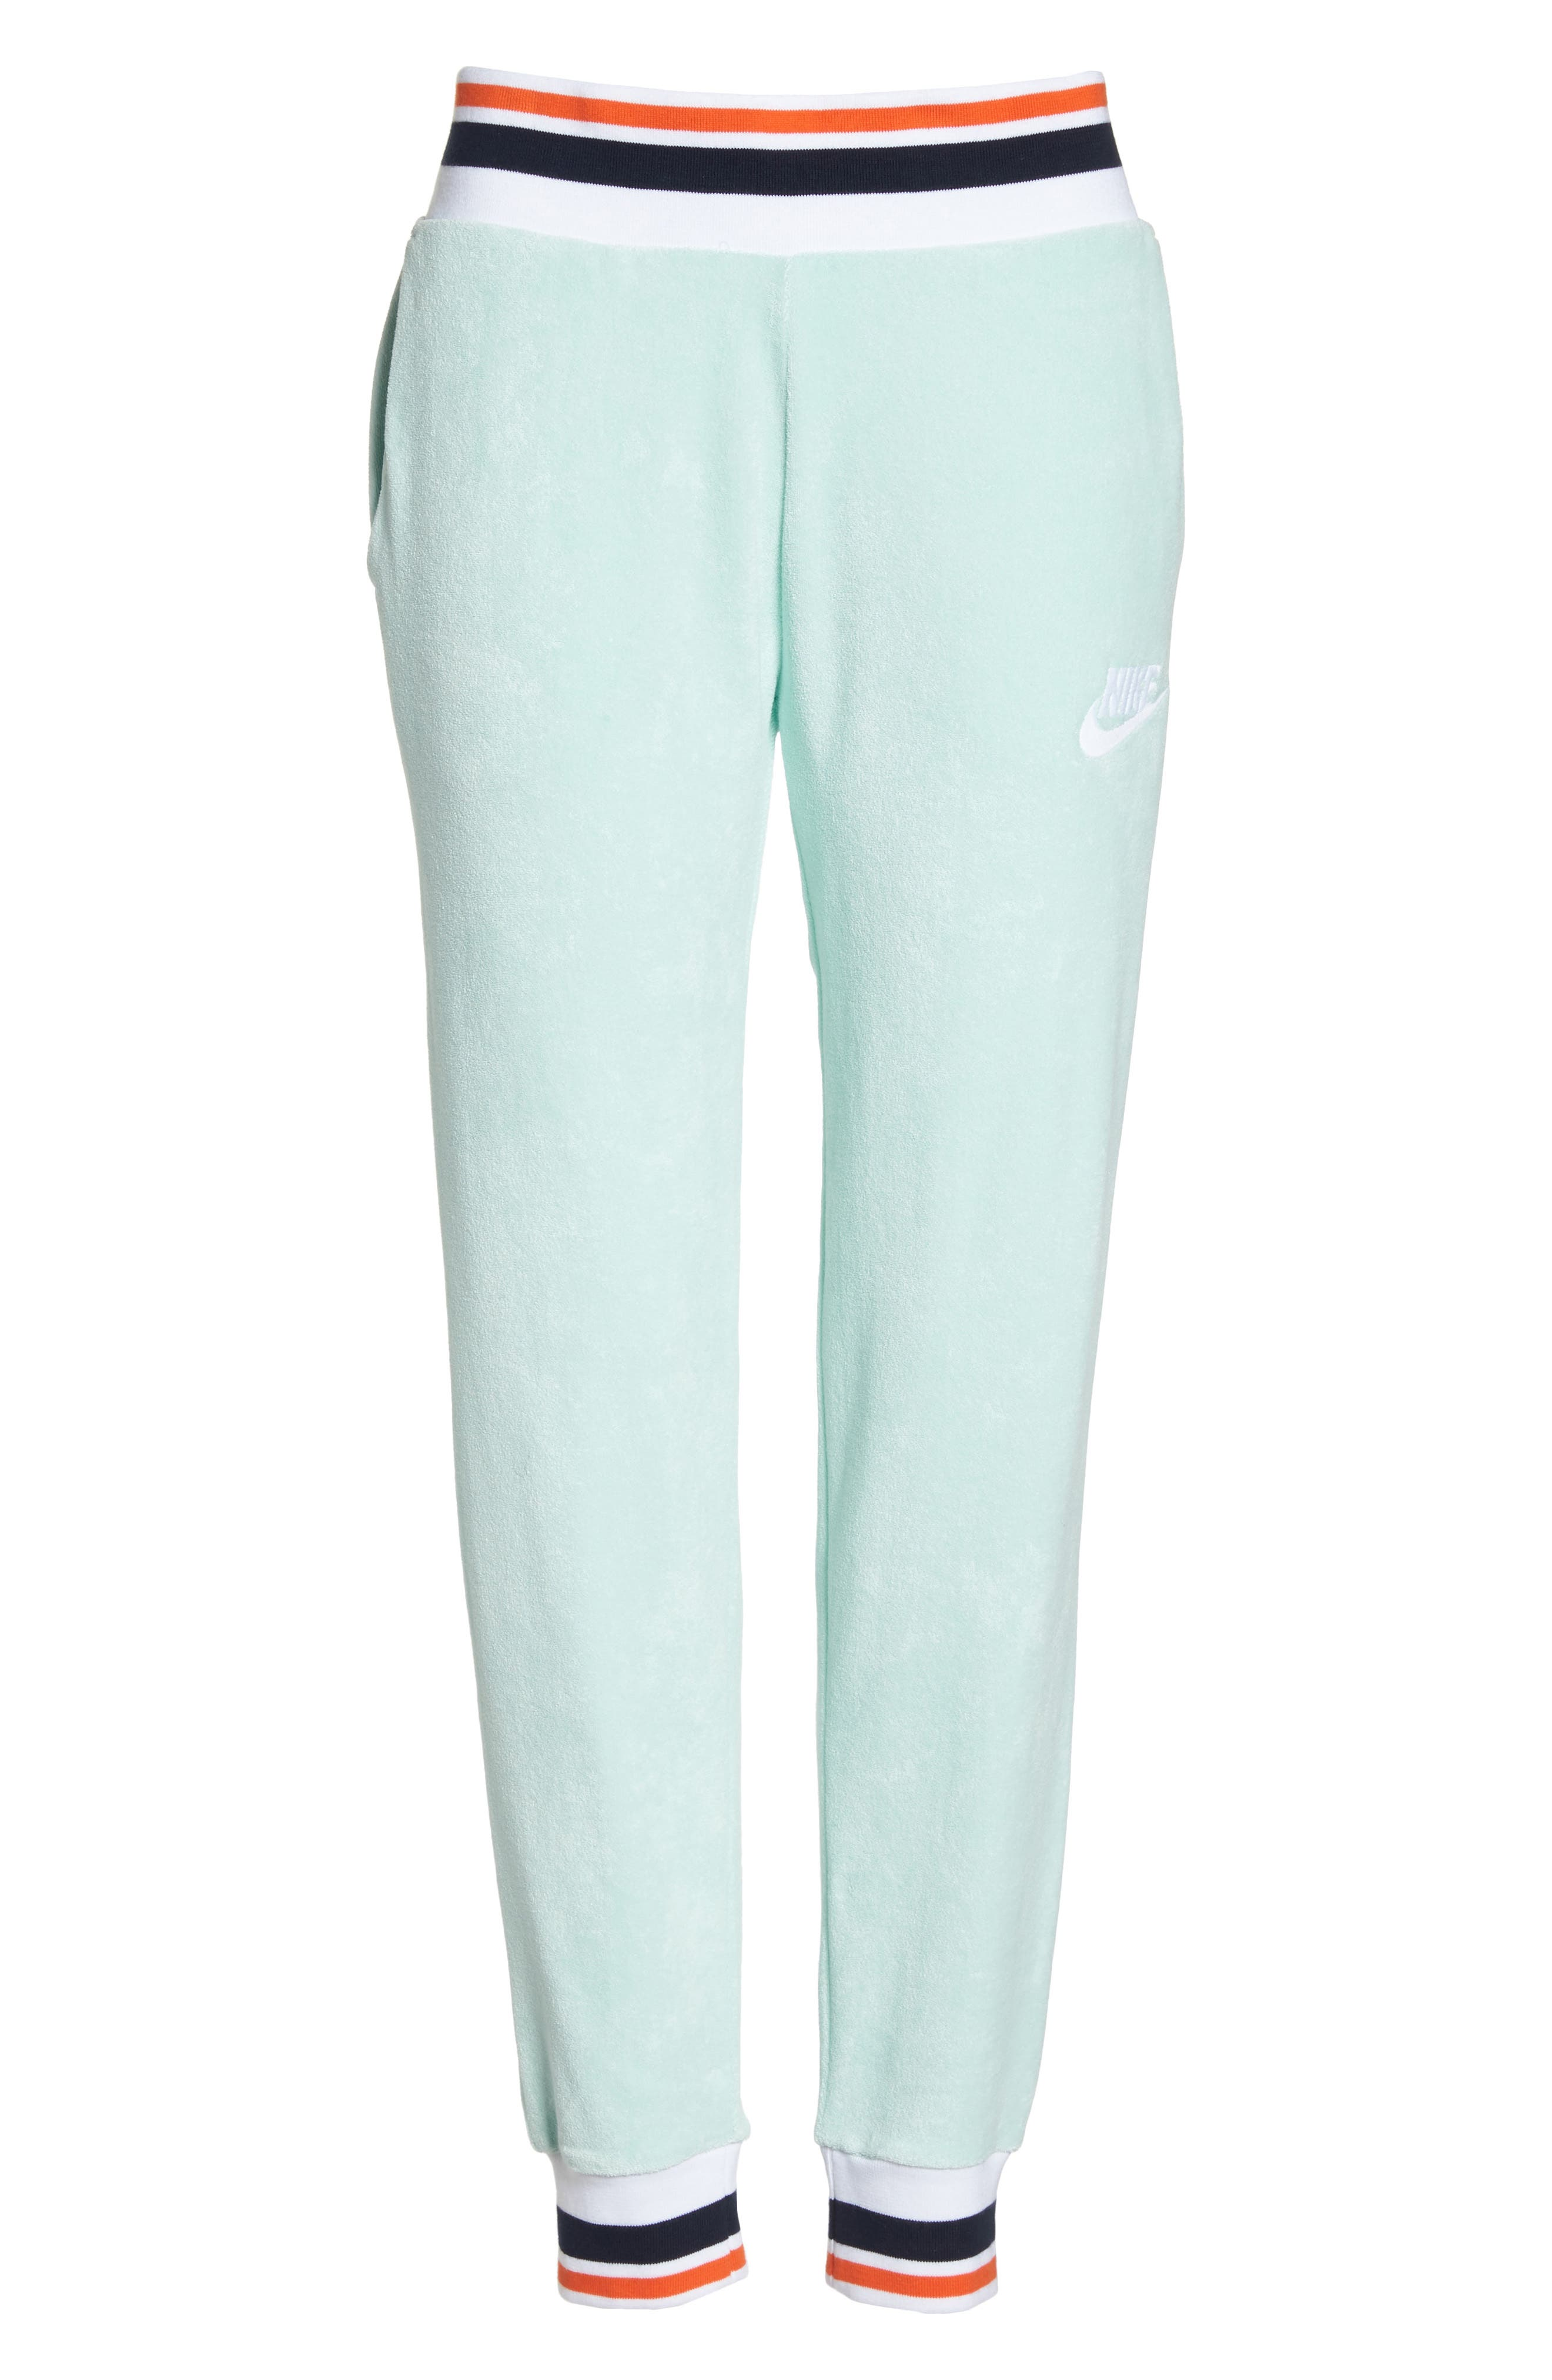 Sportswear French Terry Pants,                             Alternate thumbnail 7, color,                             401